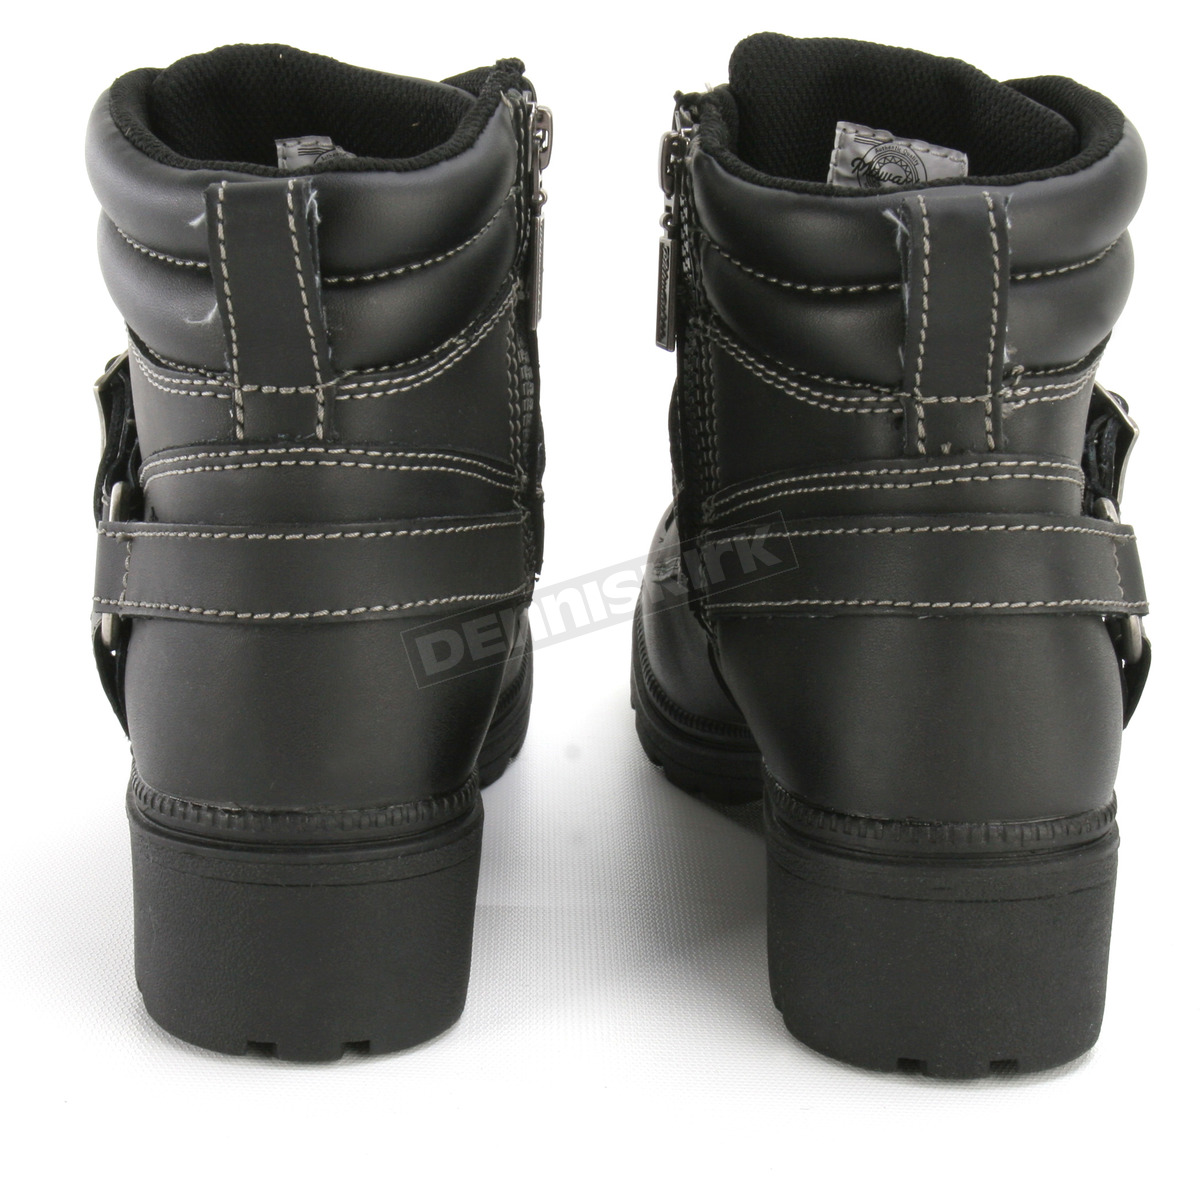 Milwaukee Motorcycle Clothing Company Womens Paragon Boots MB22815 Black, Size 7.5